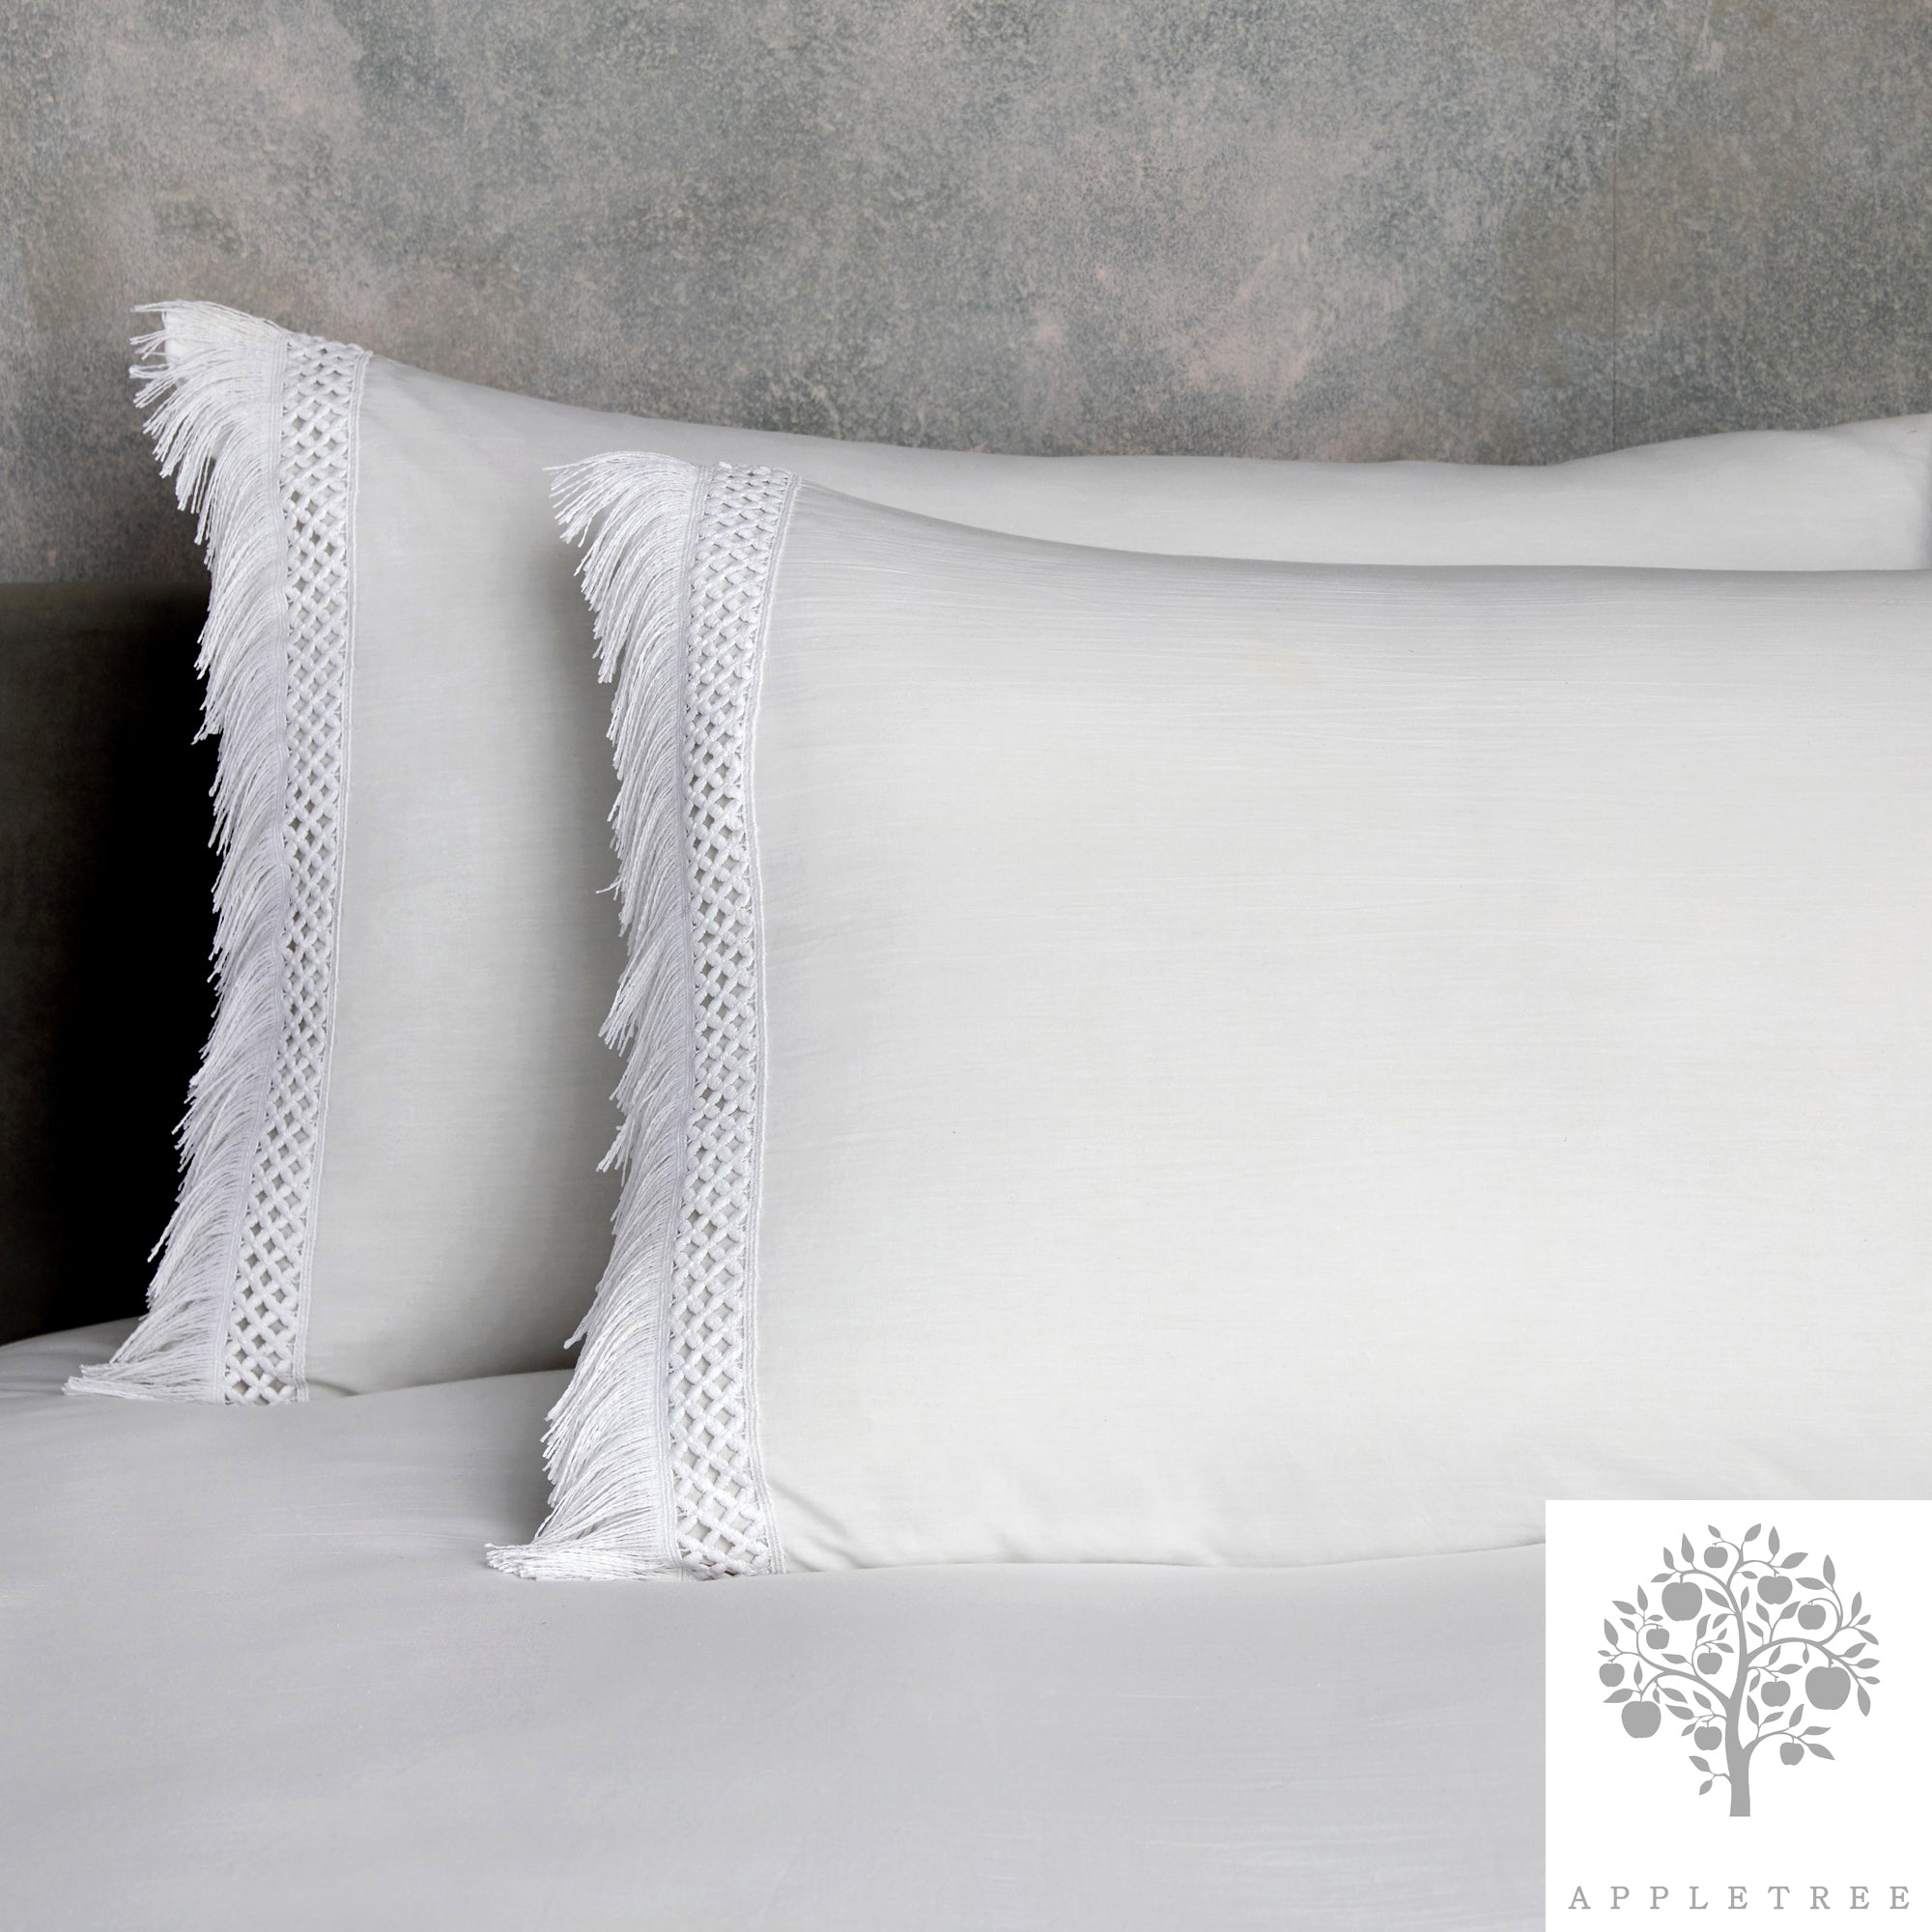 Tasha - 100% Cotton Duvet Cover Set in White by Appletree Boutique